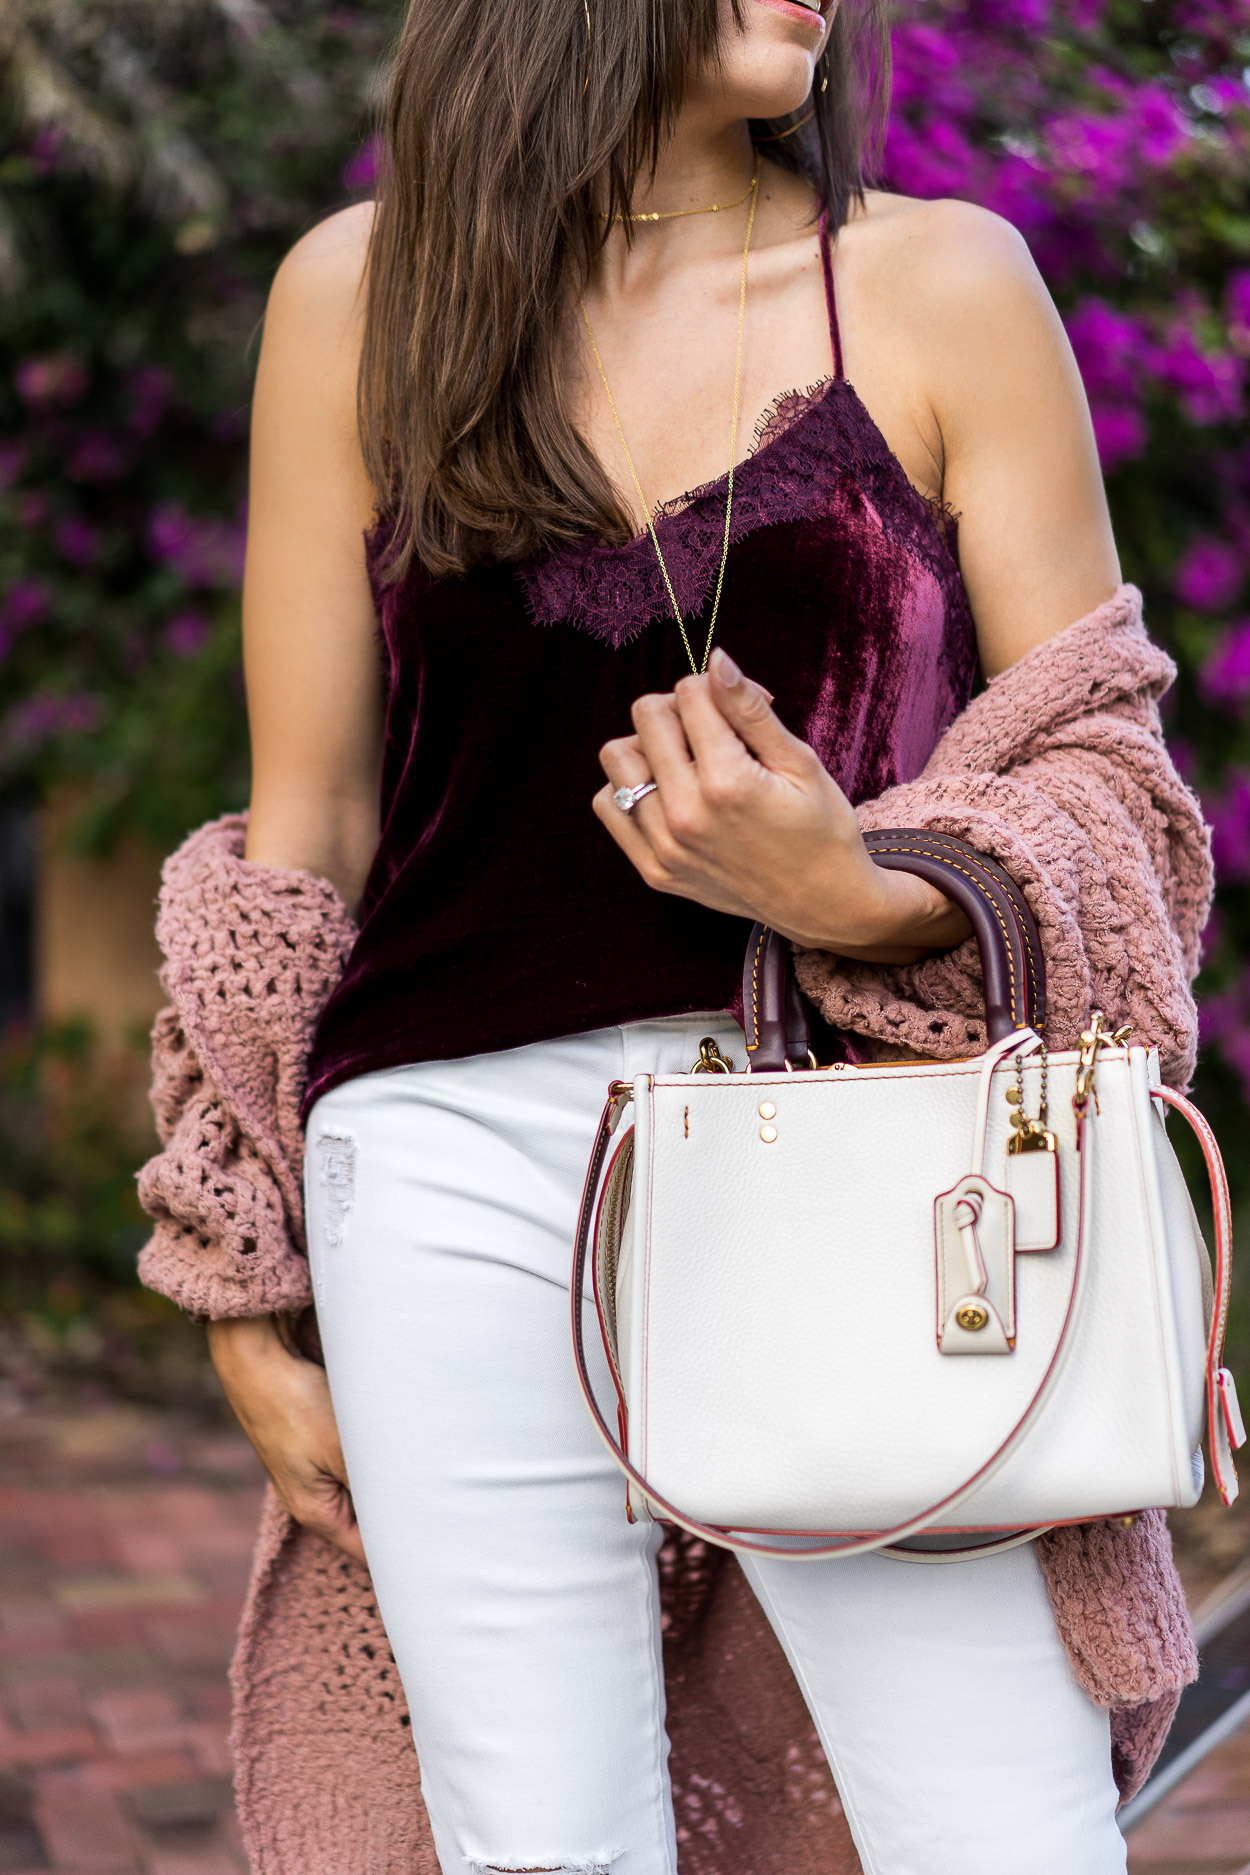 Coach Rogue bag worn with Spring layering favorites by Amanda of A Glam Lifestyle blog